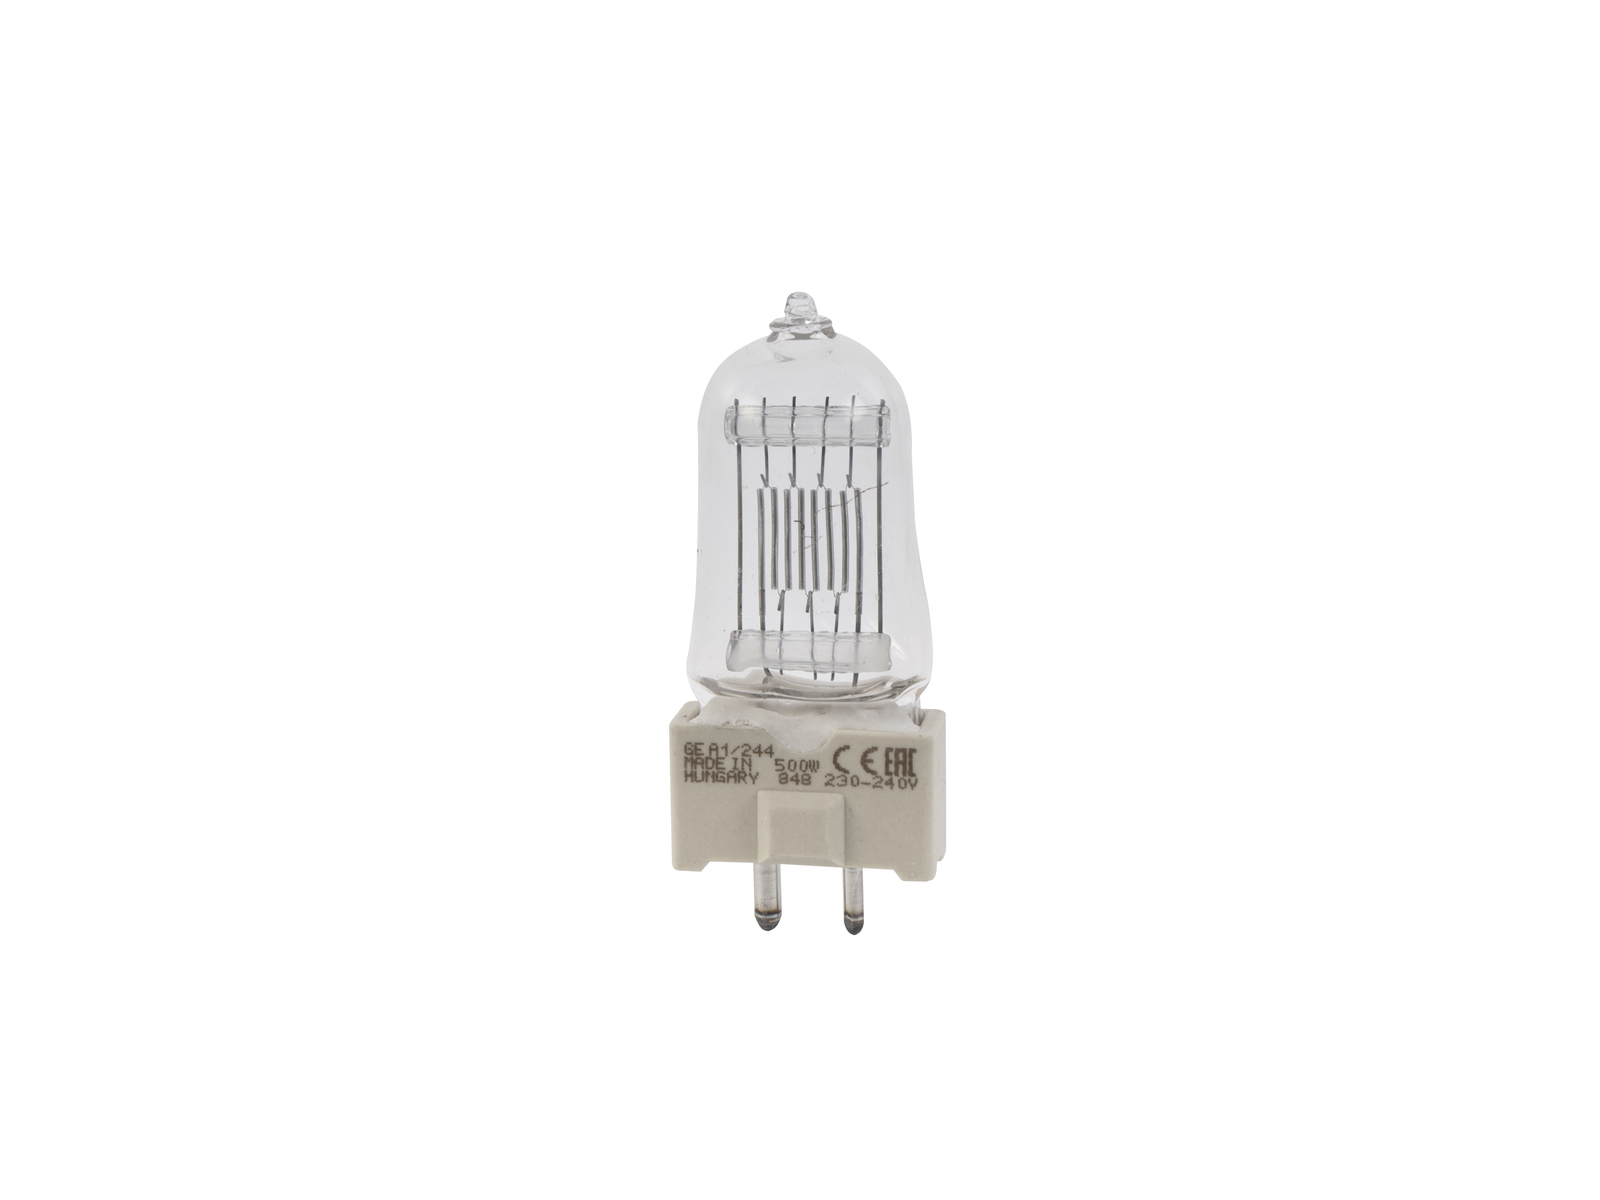 GE A1/244/240V 500W GY-9.5 75h